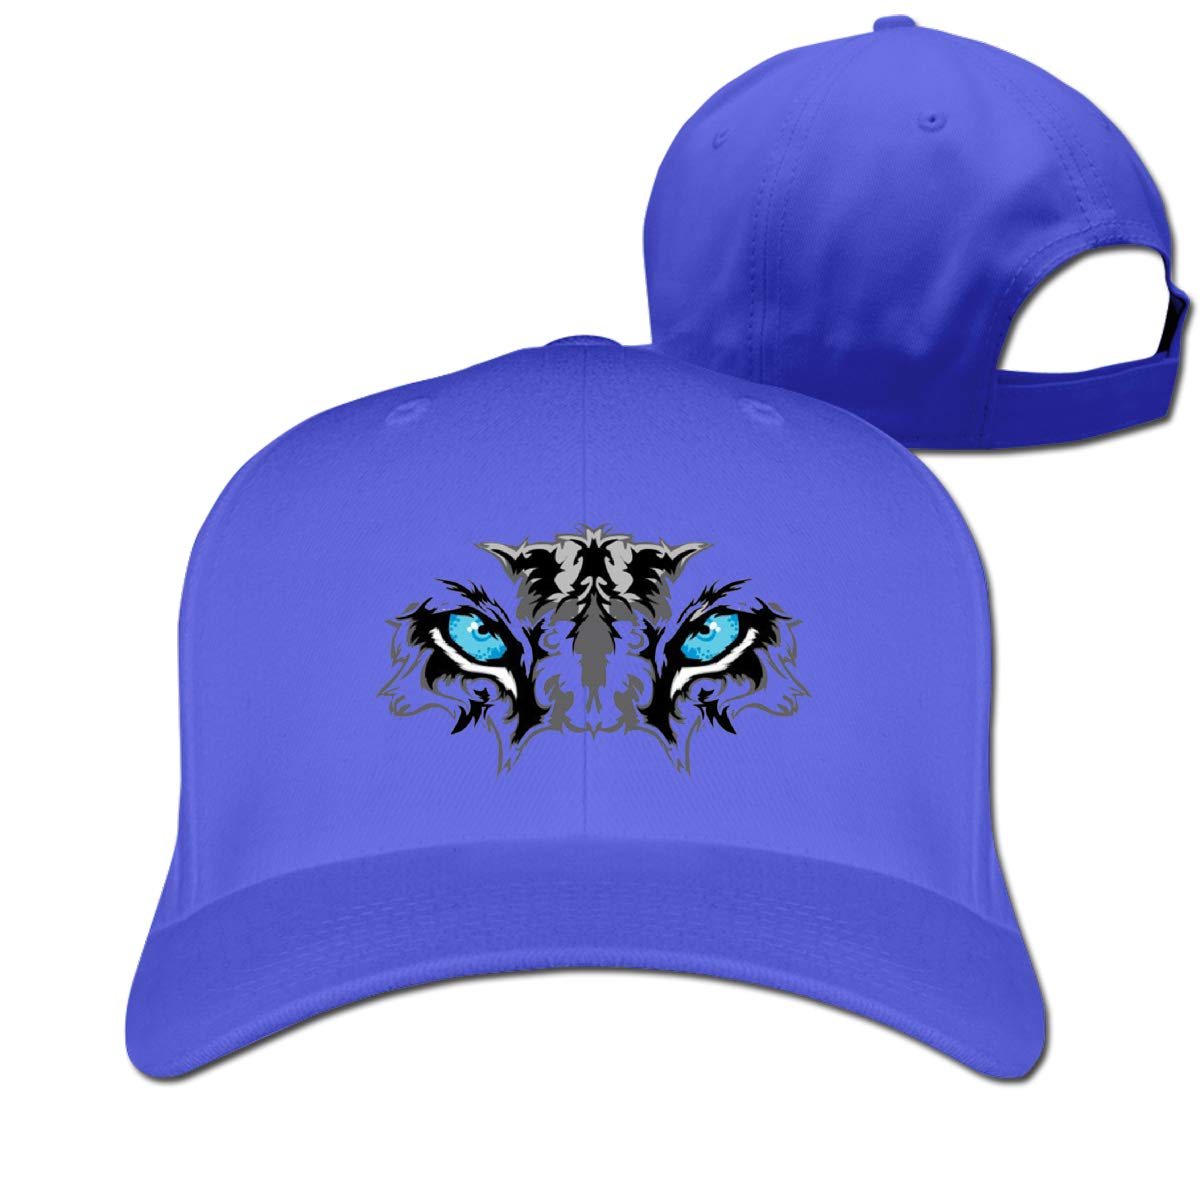 Blue Eye of The Tiger Classic Adjustable Cotton Baseball Caps Trucker Driver Hat Outdoor Cap Fitted Hats Dad Hat Gray